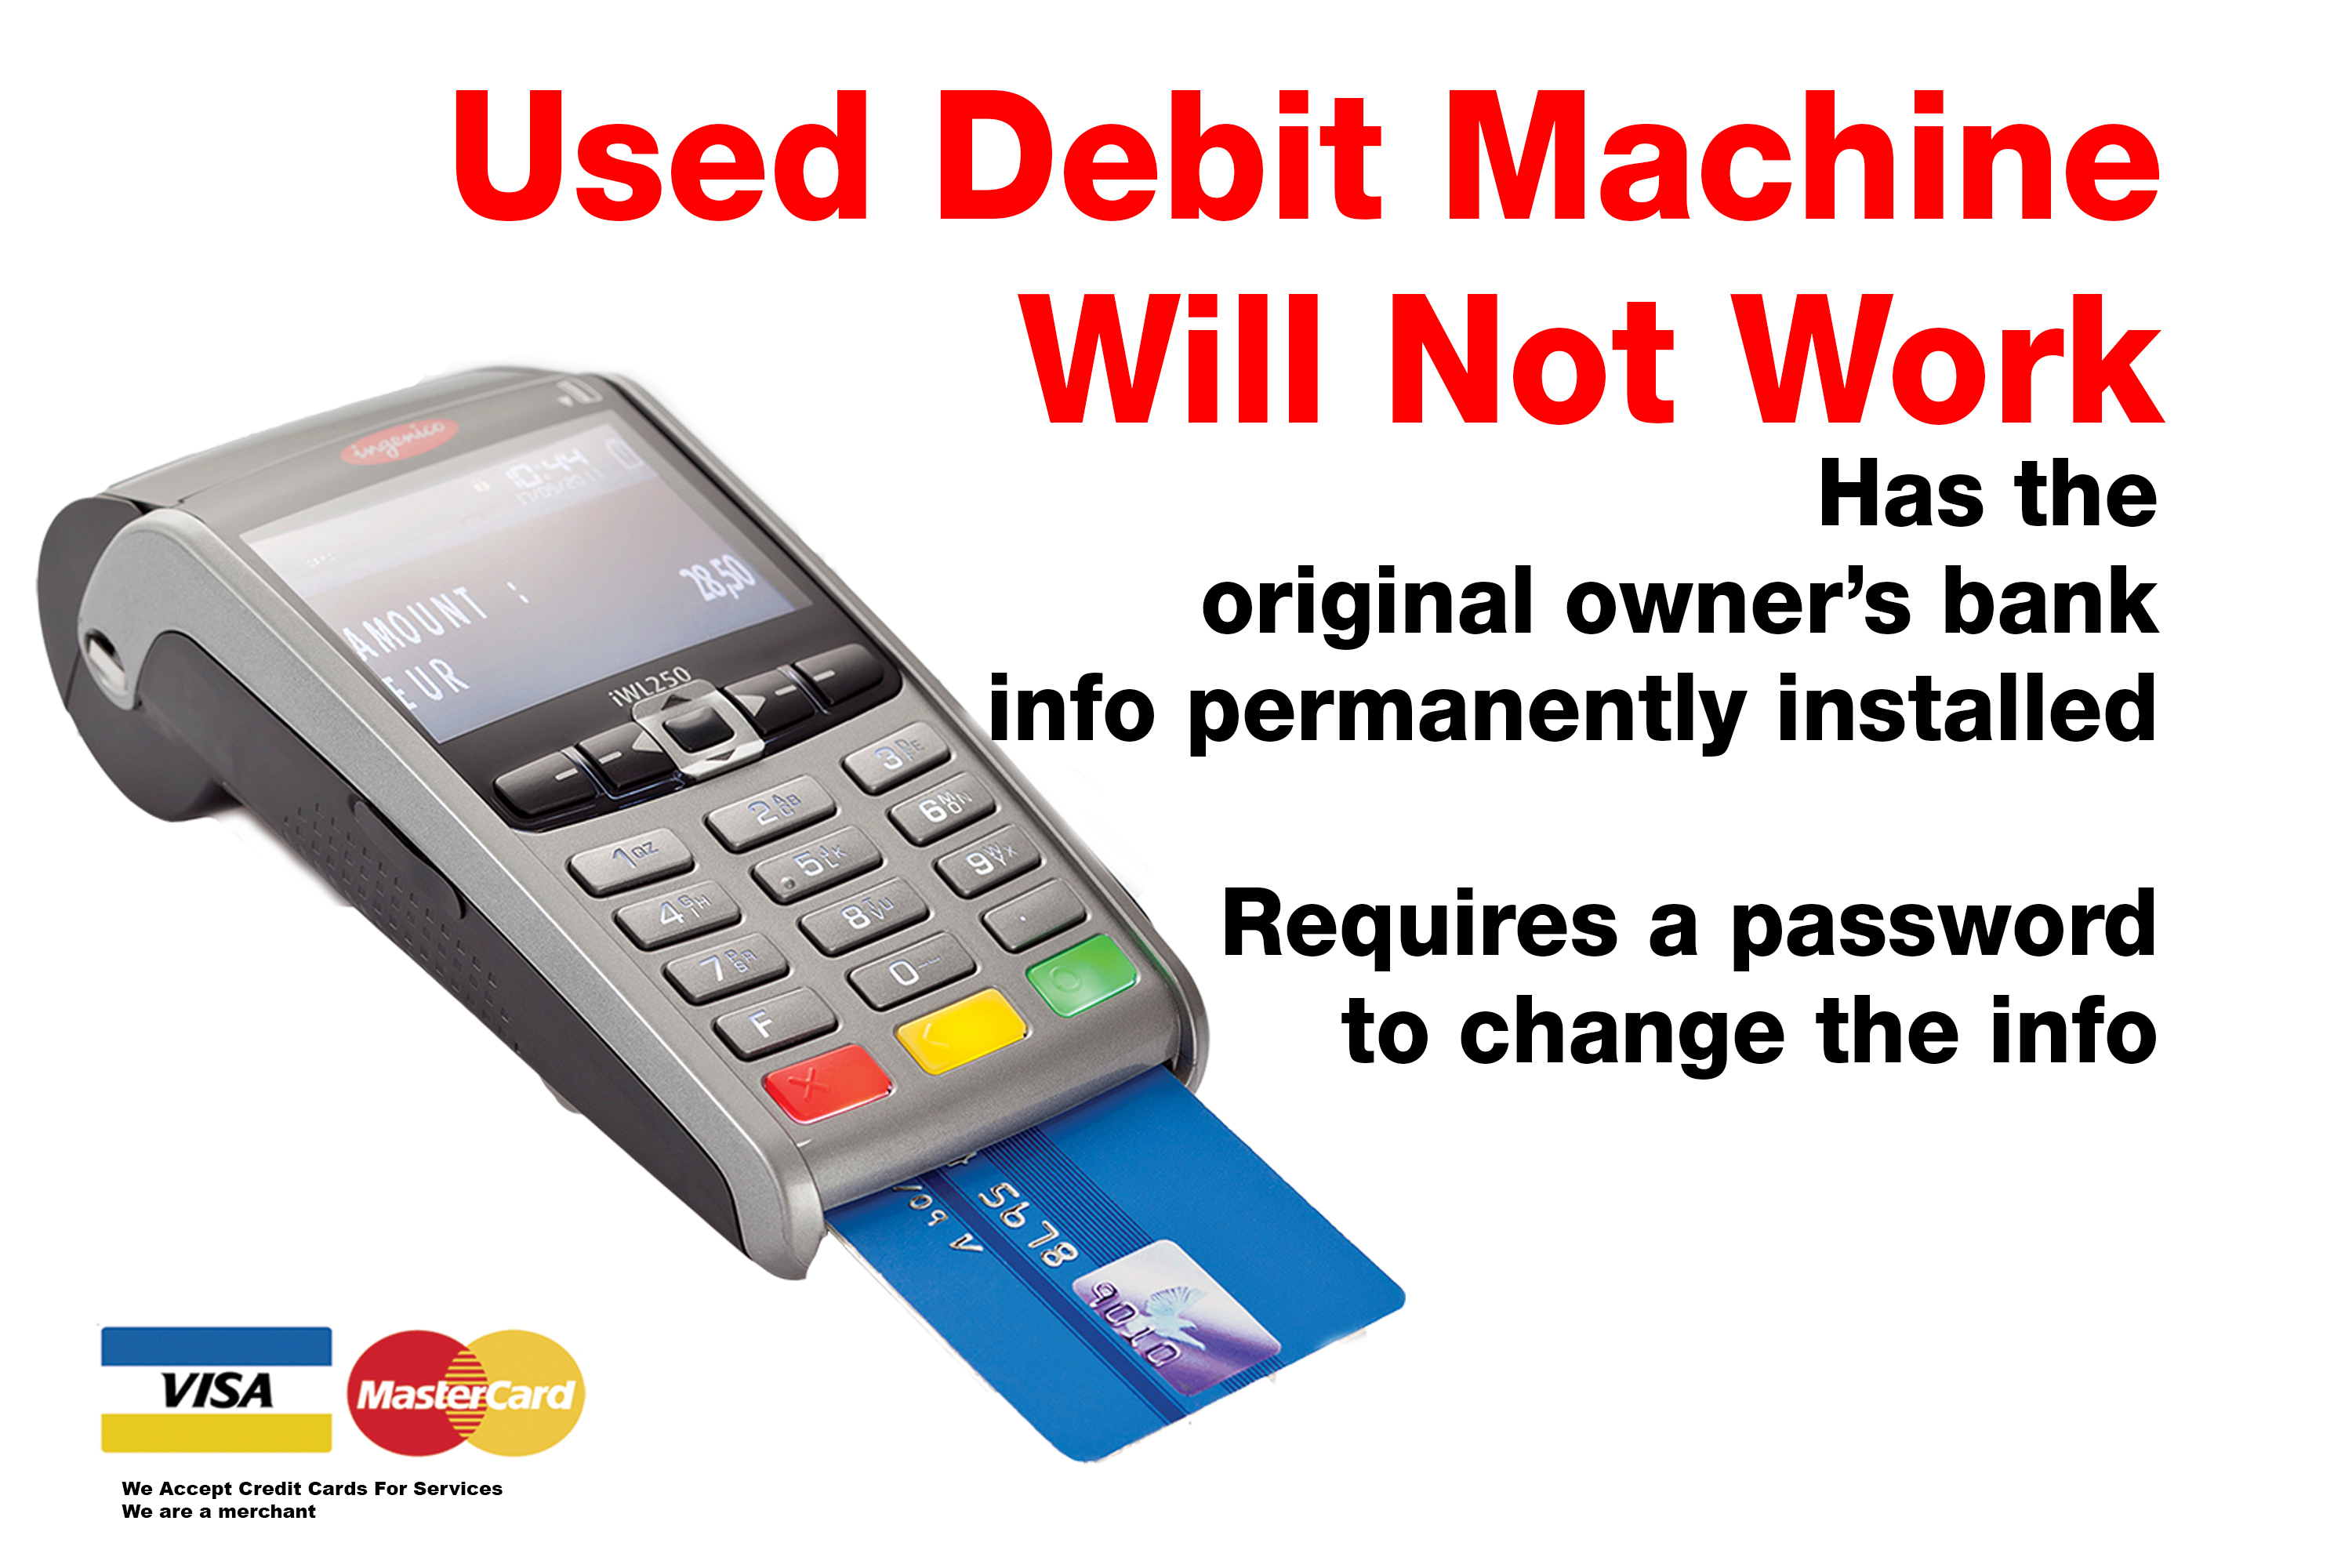 BUY A NEW POS DEBIT MACHINE WITH YOUR BANK ACCOUNT IN IT $0.03 For debit + Visa starts at 1.52% You can buy DeskTop debit machine for $375 on your credit card. Or two payments of $250 You can buy Wireless debit machine for $475 on your credit card. Or two payments of $300 POS terminals Toronto Via Lease - $300 Signing Bonus $29.99 For the deskTop POS debit Machine $39.99 For Wireless Payment POS